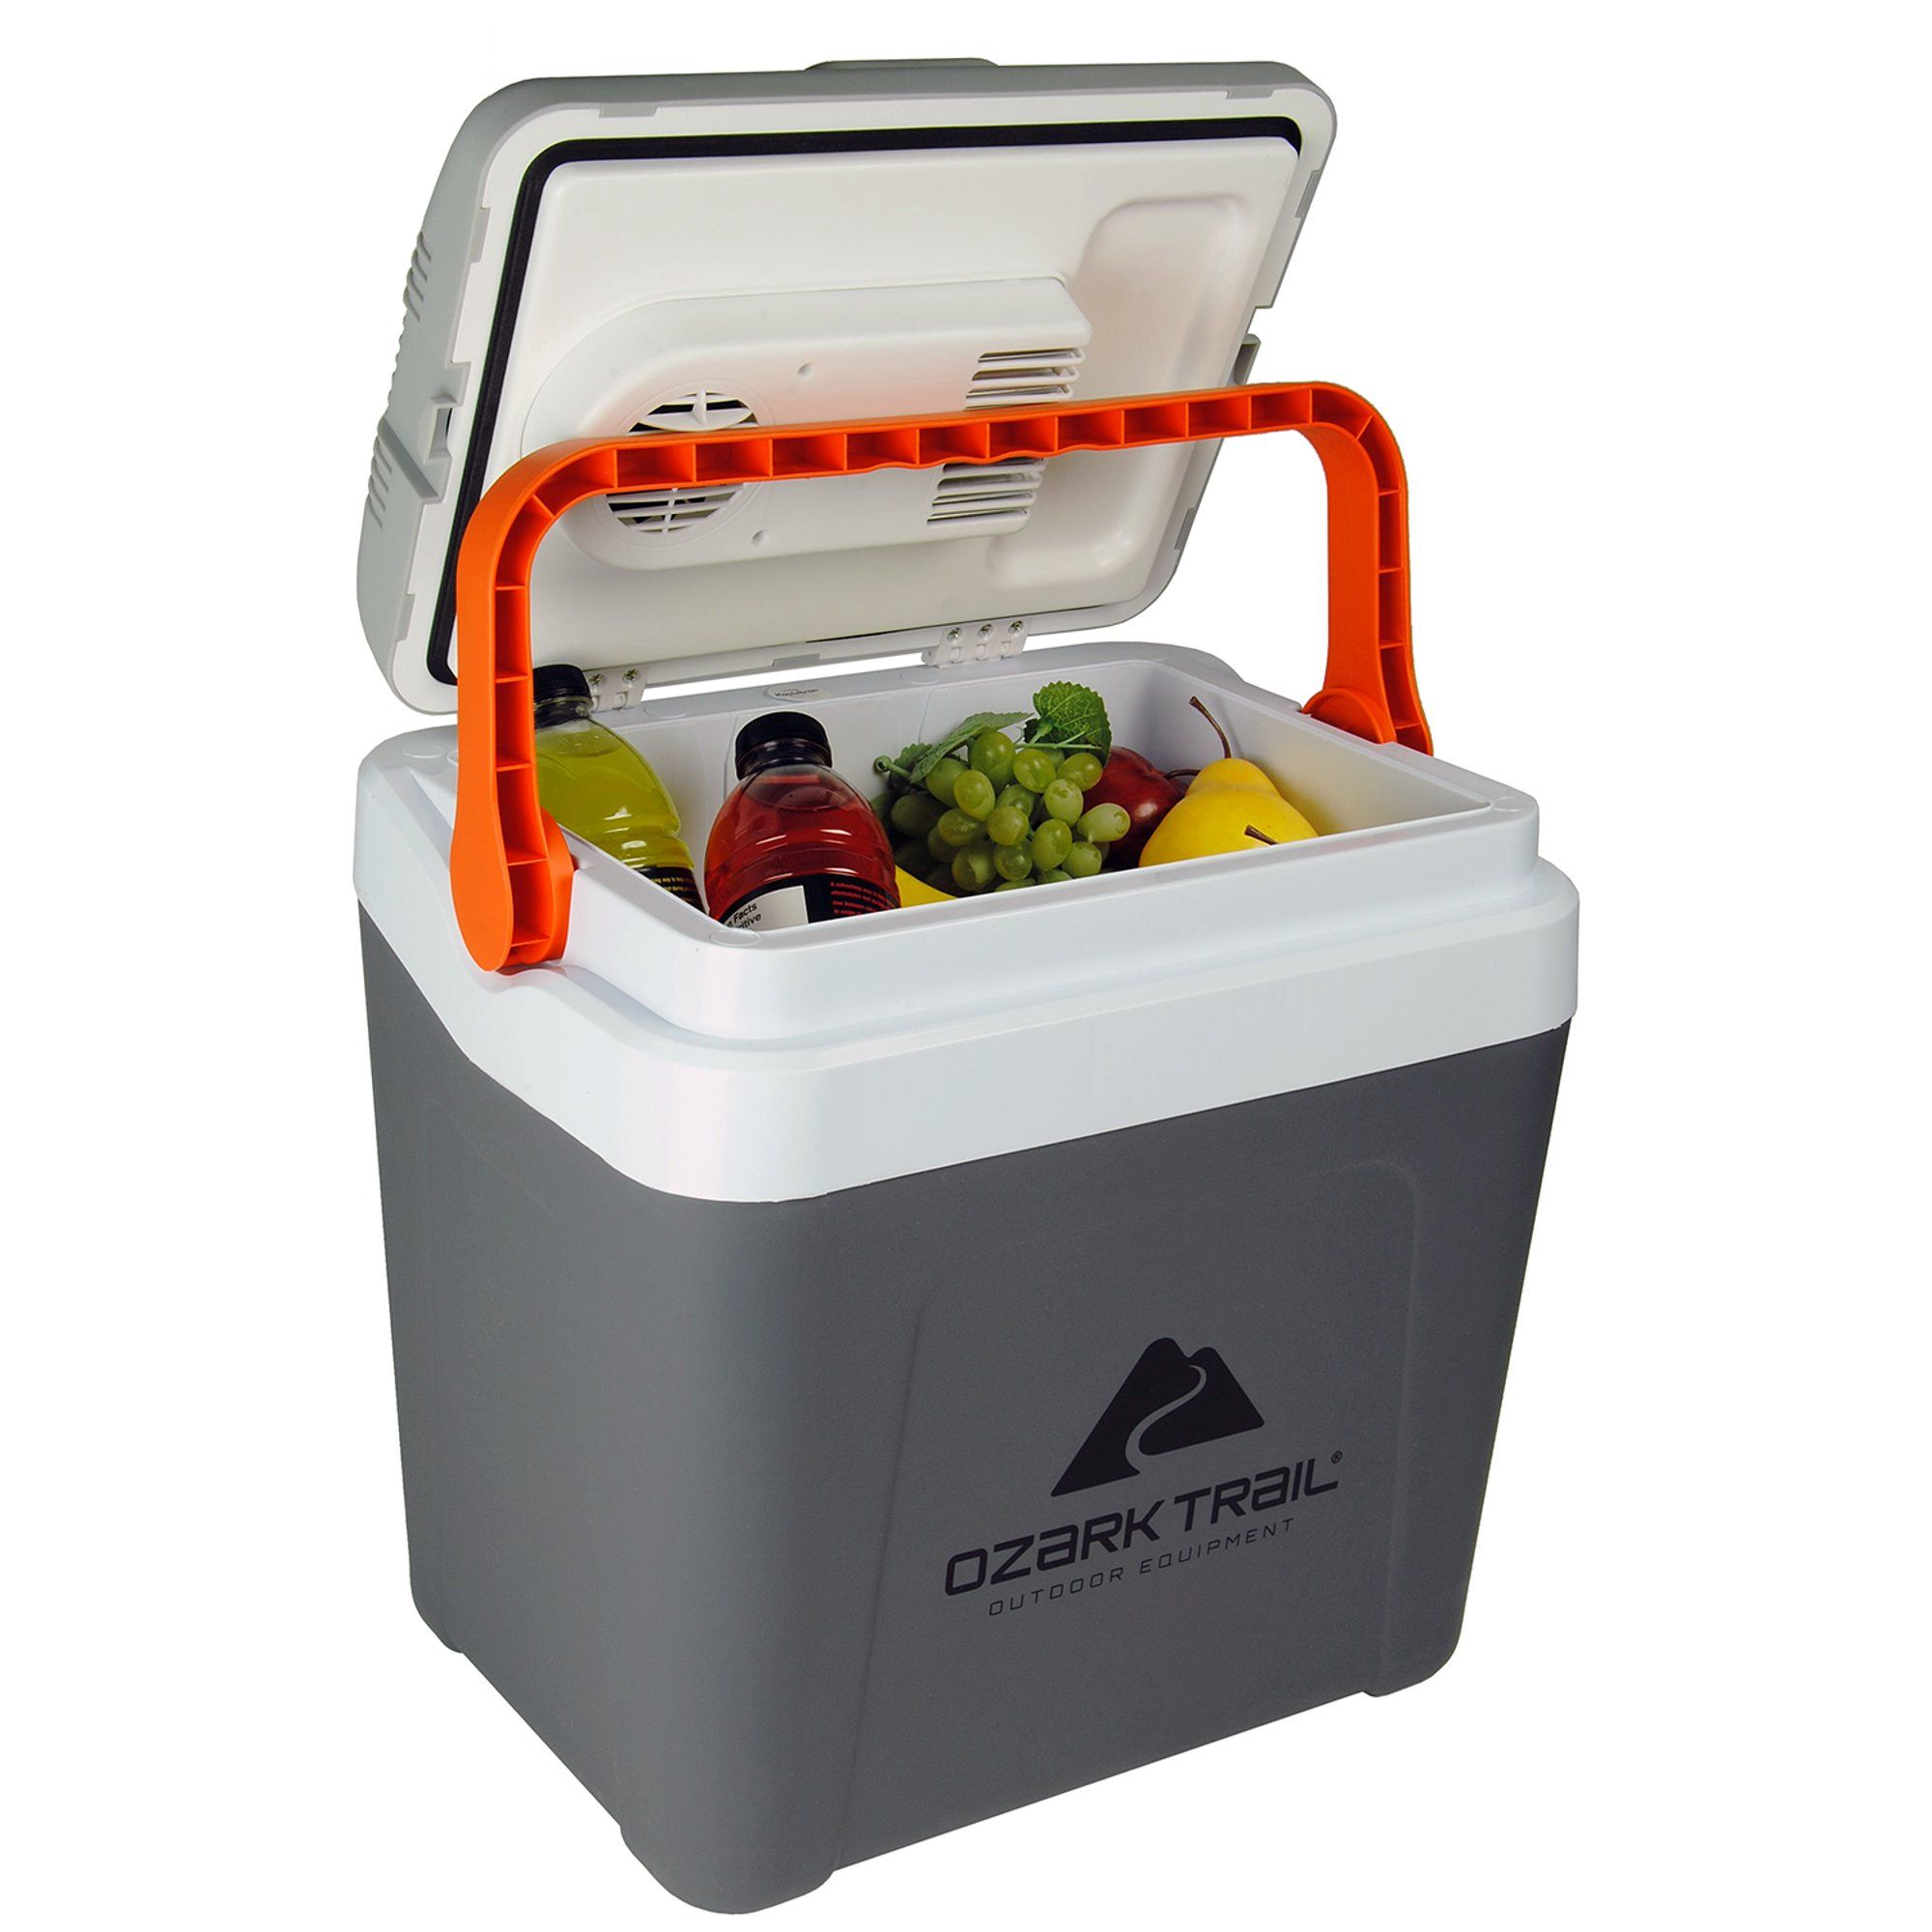 Ozark Trail Highline 26 Quart 12 Volt Electric Cooler 25l 30 Can Capacity Walmart Com In 2020 Ozark Ozark Trail Portable Cooler